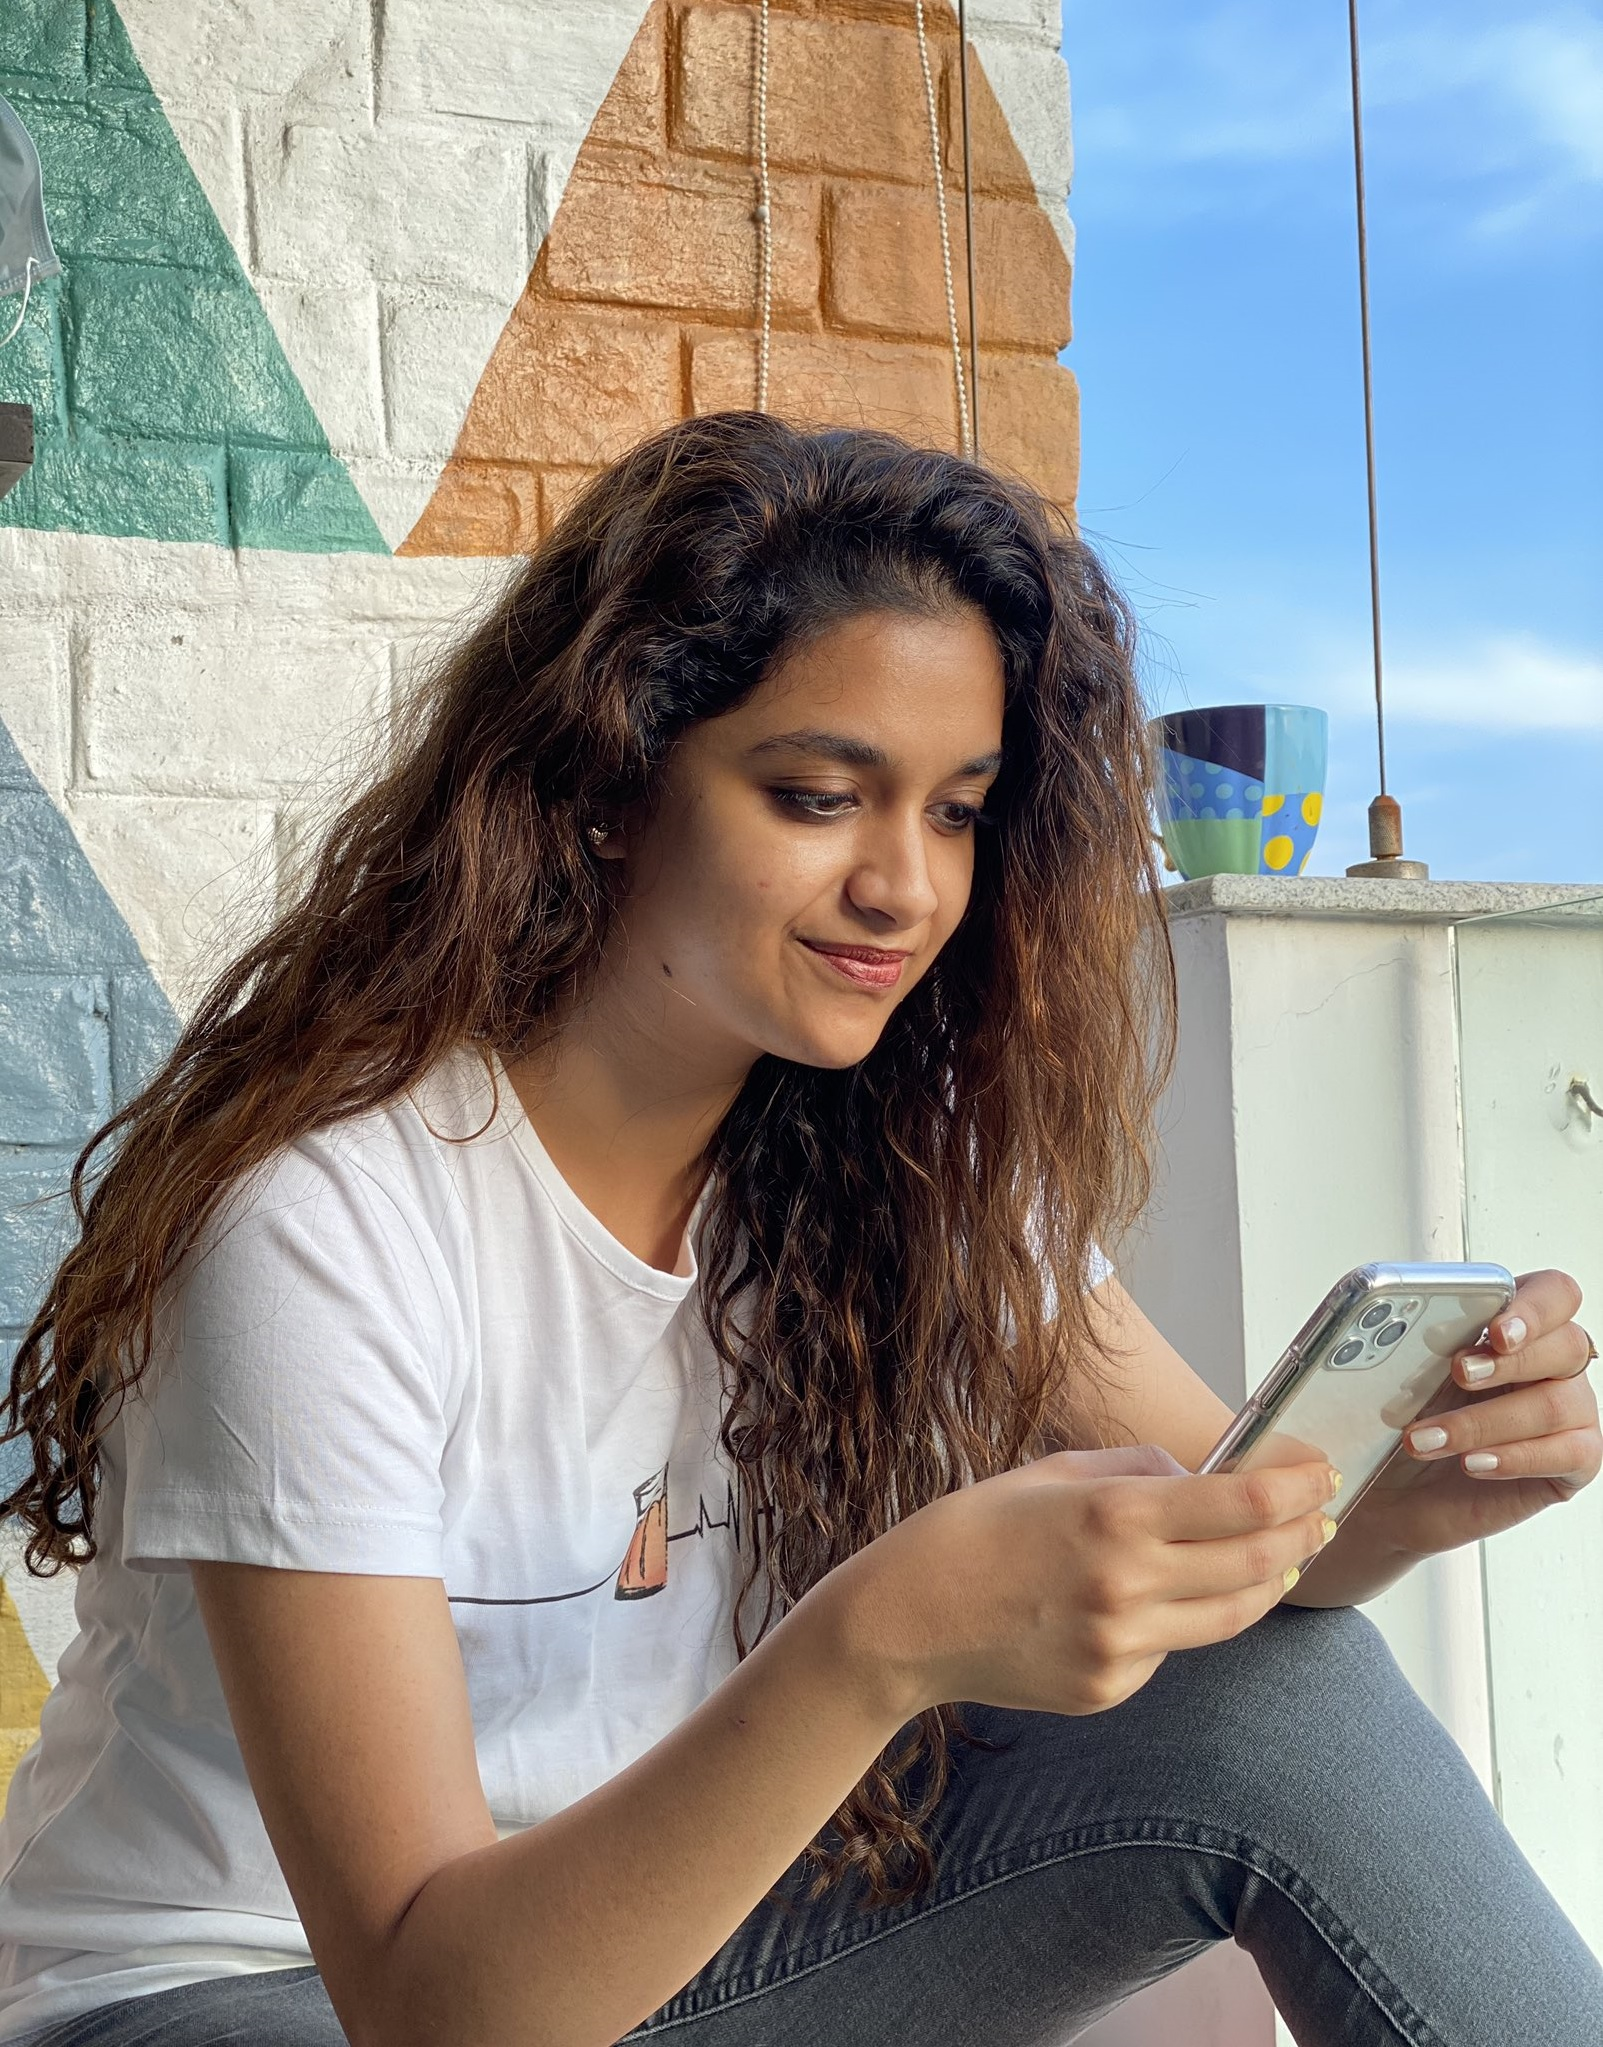 Keerthy Suresh in White Colour T-Shirt with Pretty Smile for Live Chat on Twitter